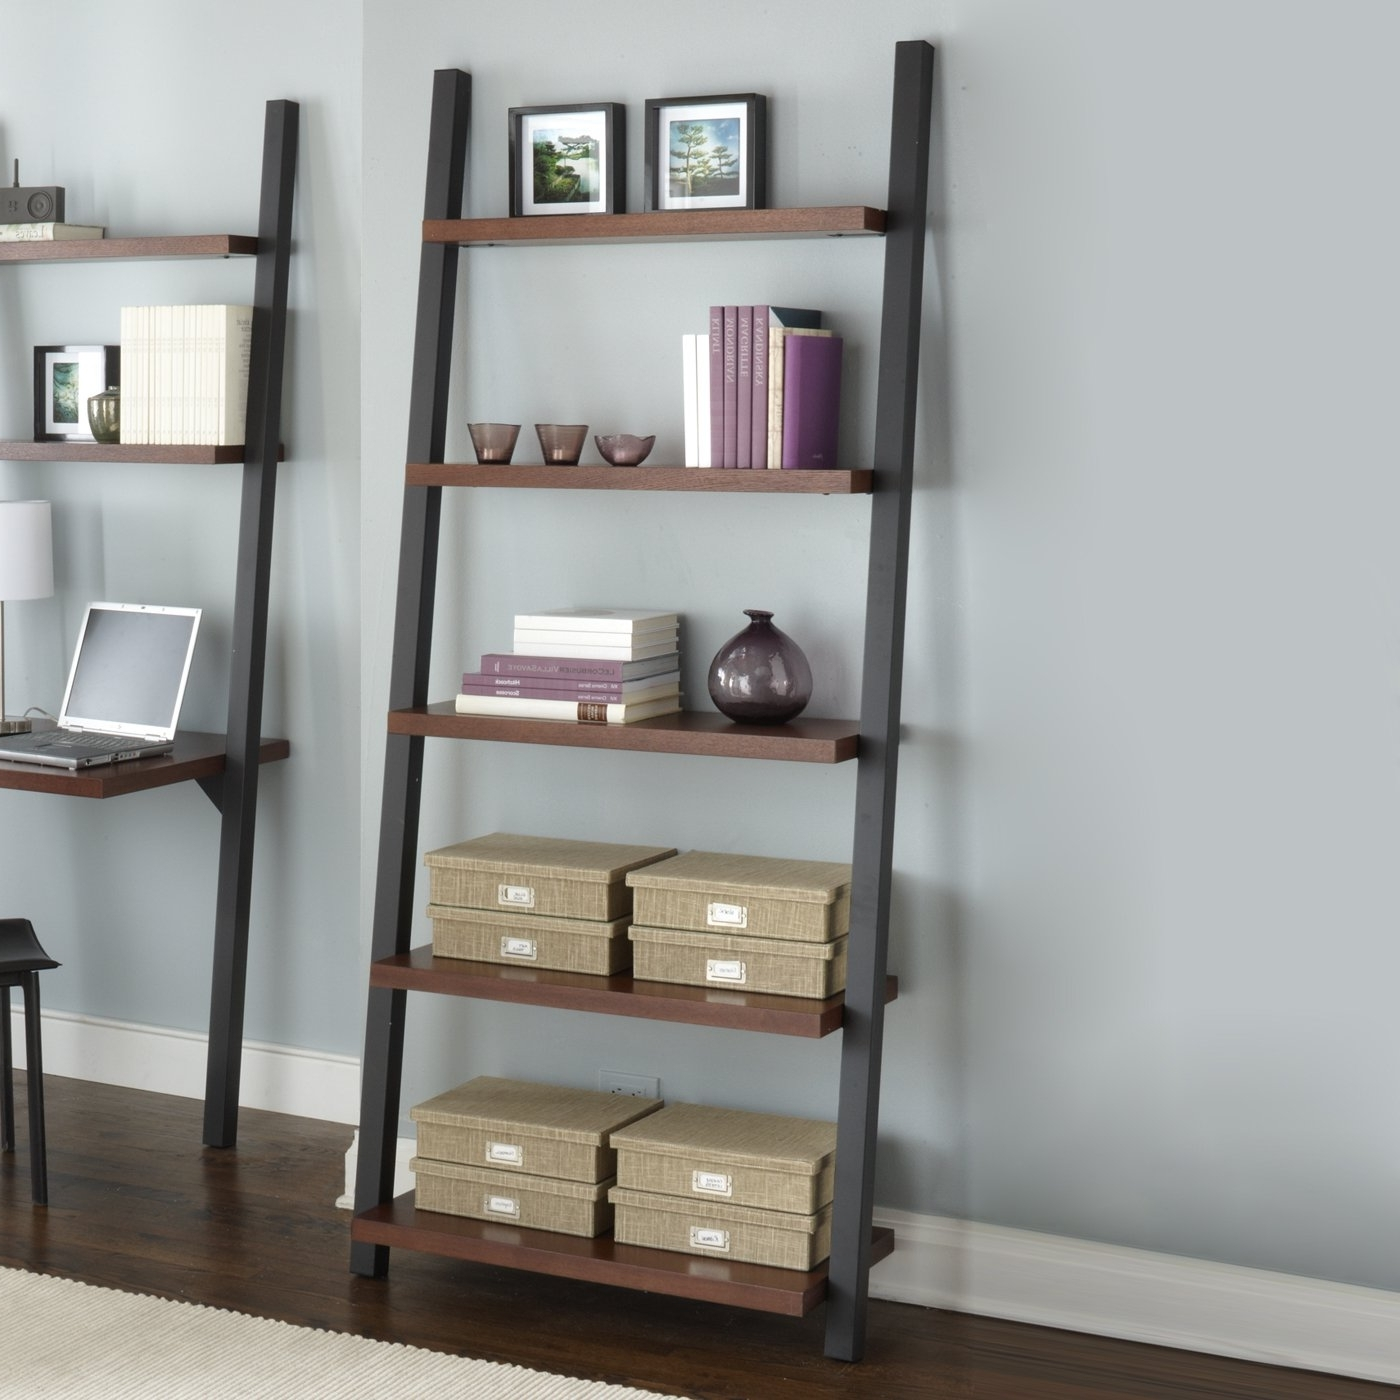 Leaning Bookcase Crate And Barrel : Furniture Decor Trend Regarding 2018 Crate And Barrel Bookcases (View 13 of 15)